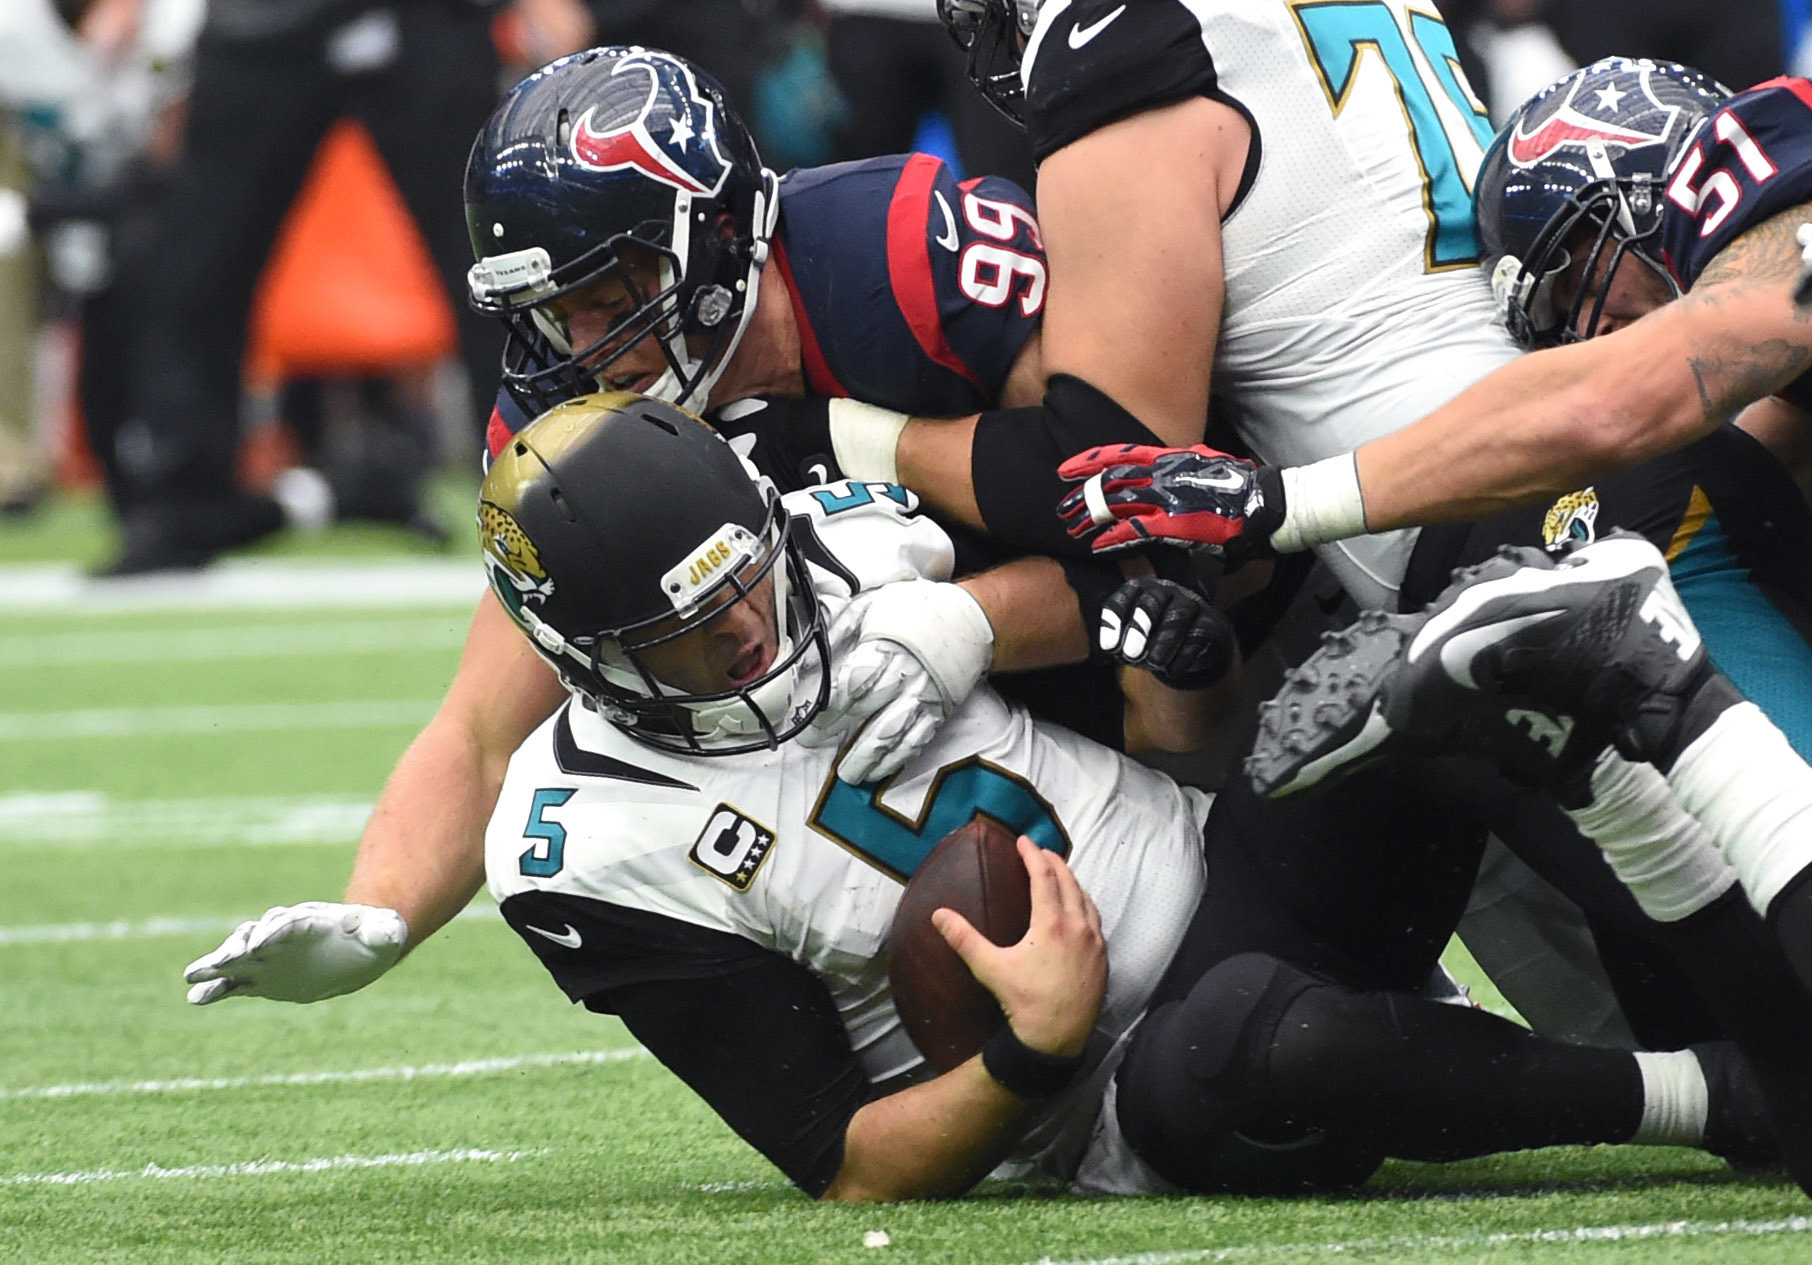 FILE - In this Jan. 3, 2016, file photo, Jacksonville Jaguars quarterback Blake Bortles (5) is sacked by Houston Texans defensive end J.J. Watt (99) during the second half of an NFL football game in Houston. The status of J.J. Watt is uncertain after he m